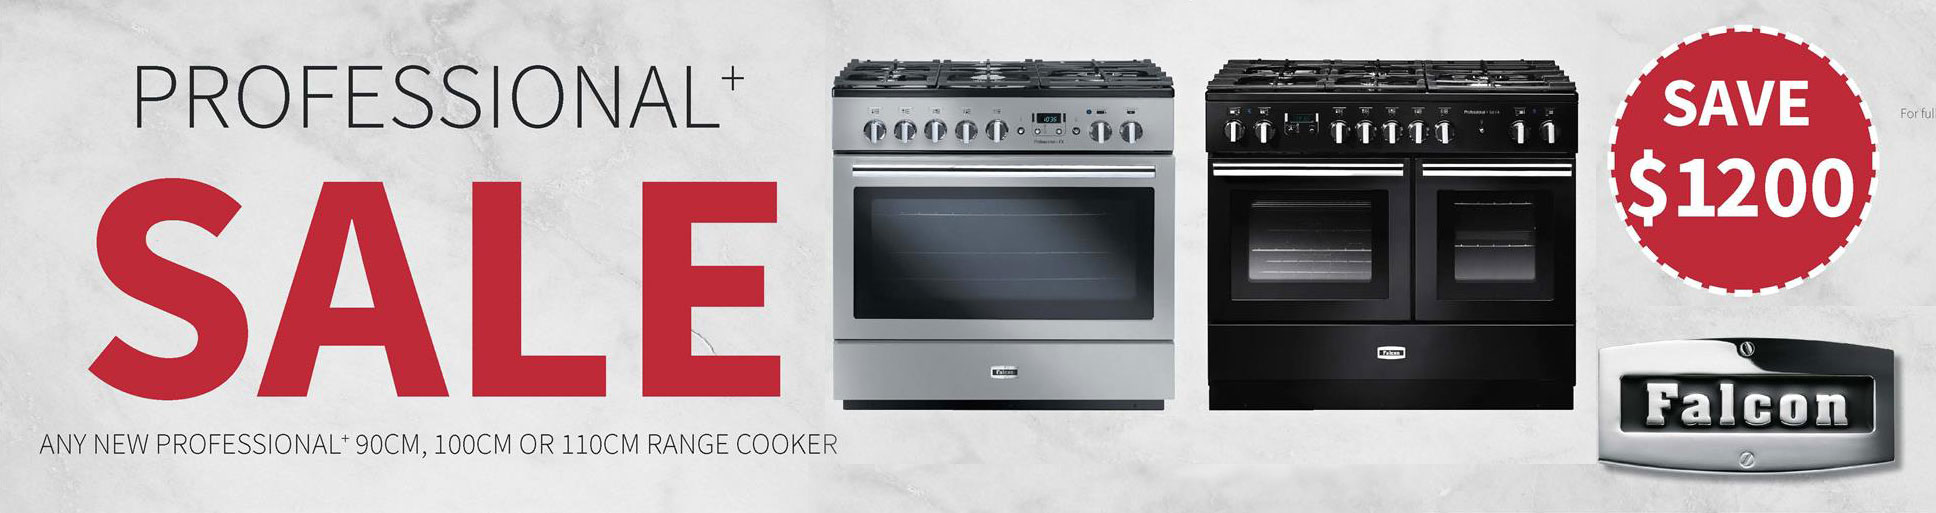 Falcon Oven sale - $1200 Off Professional +